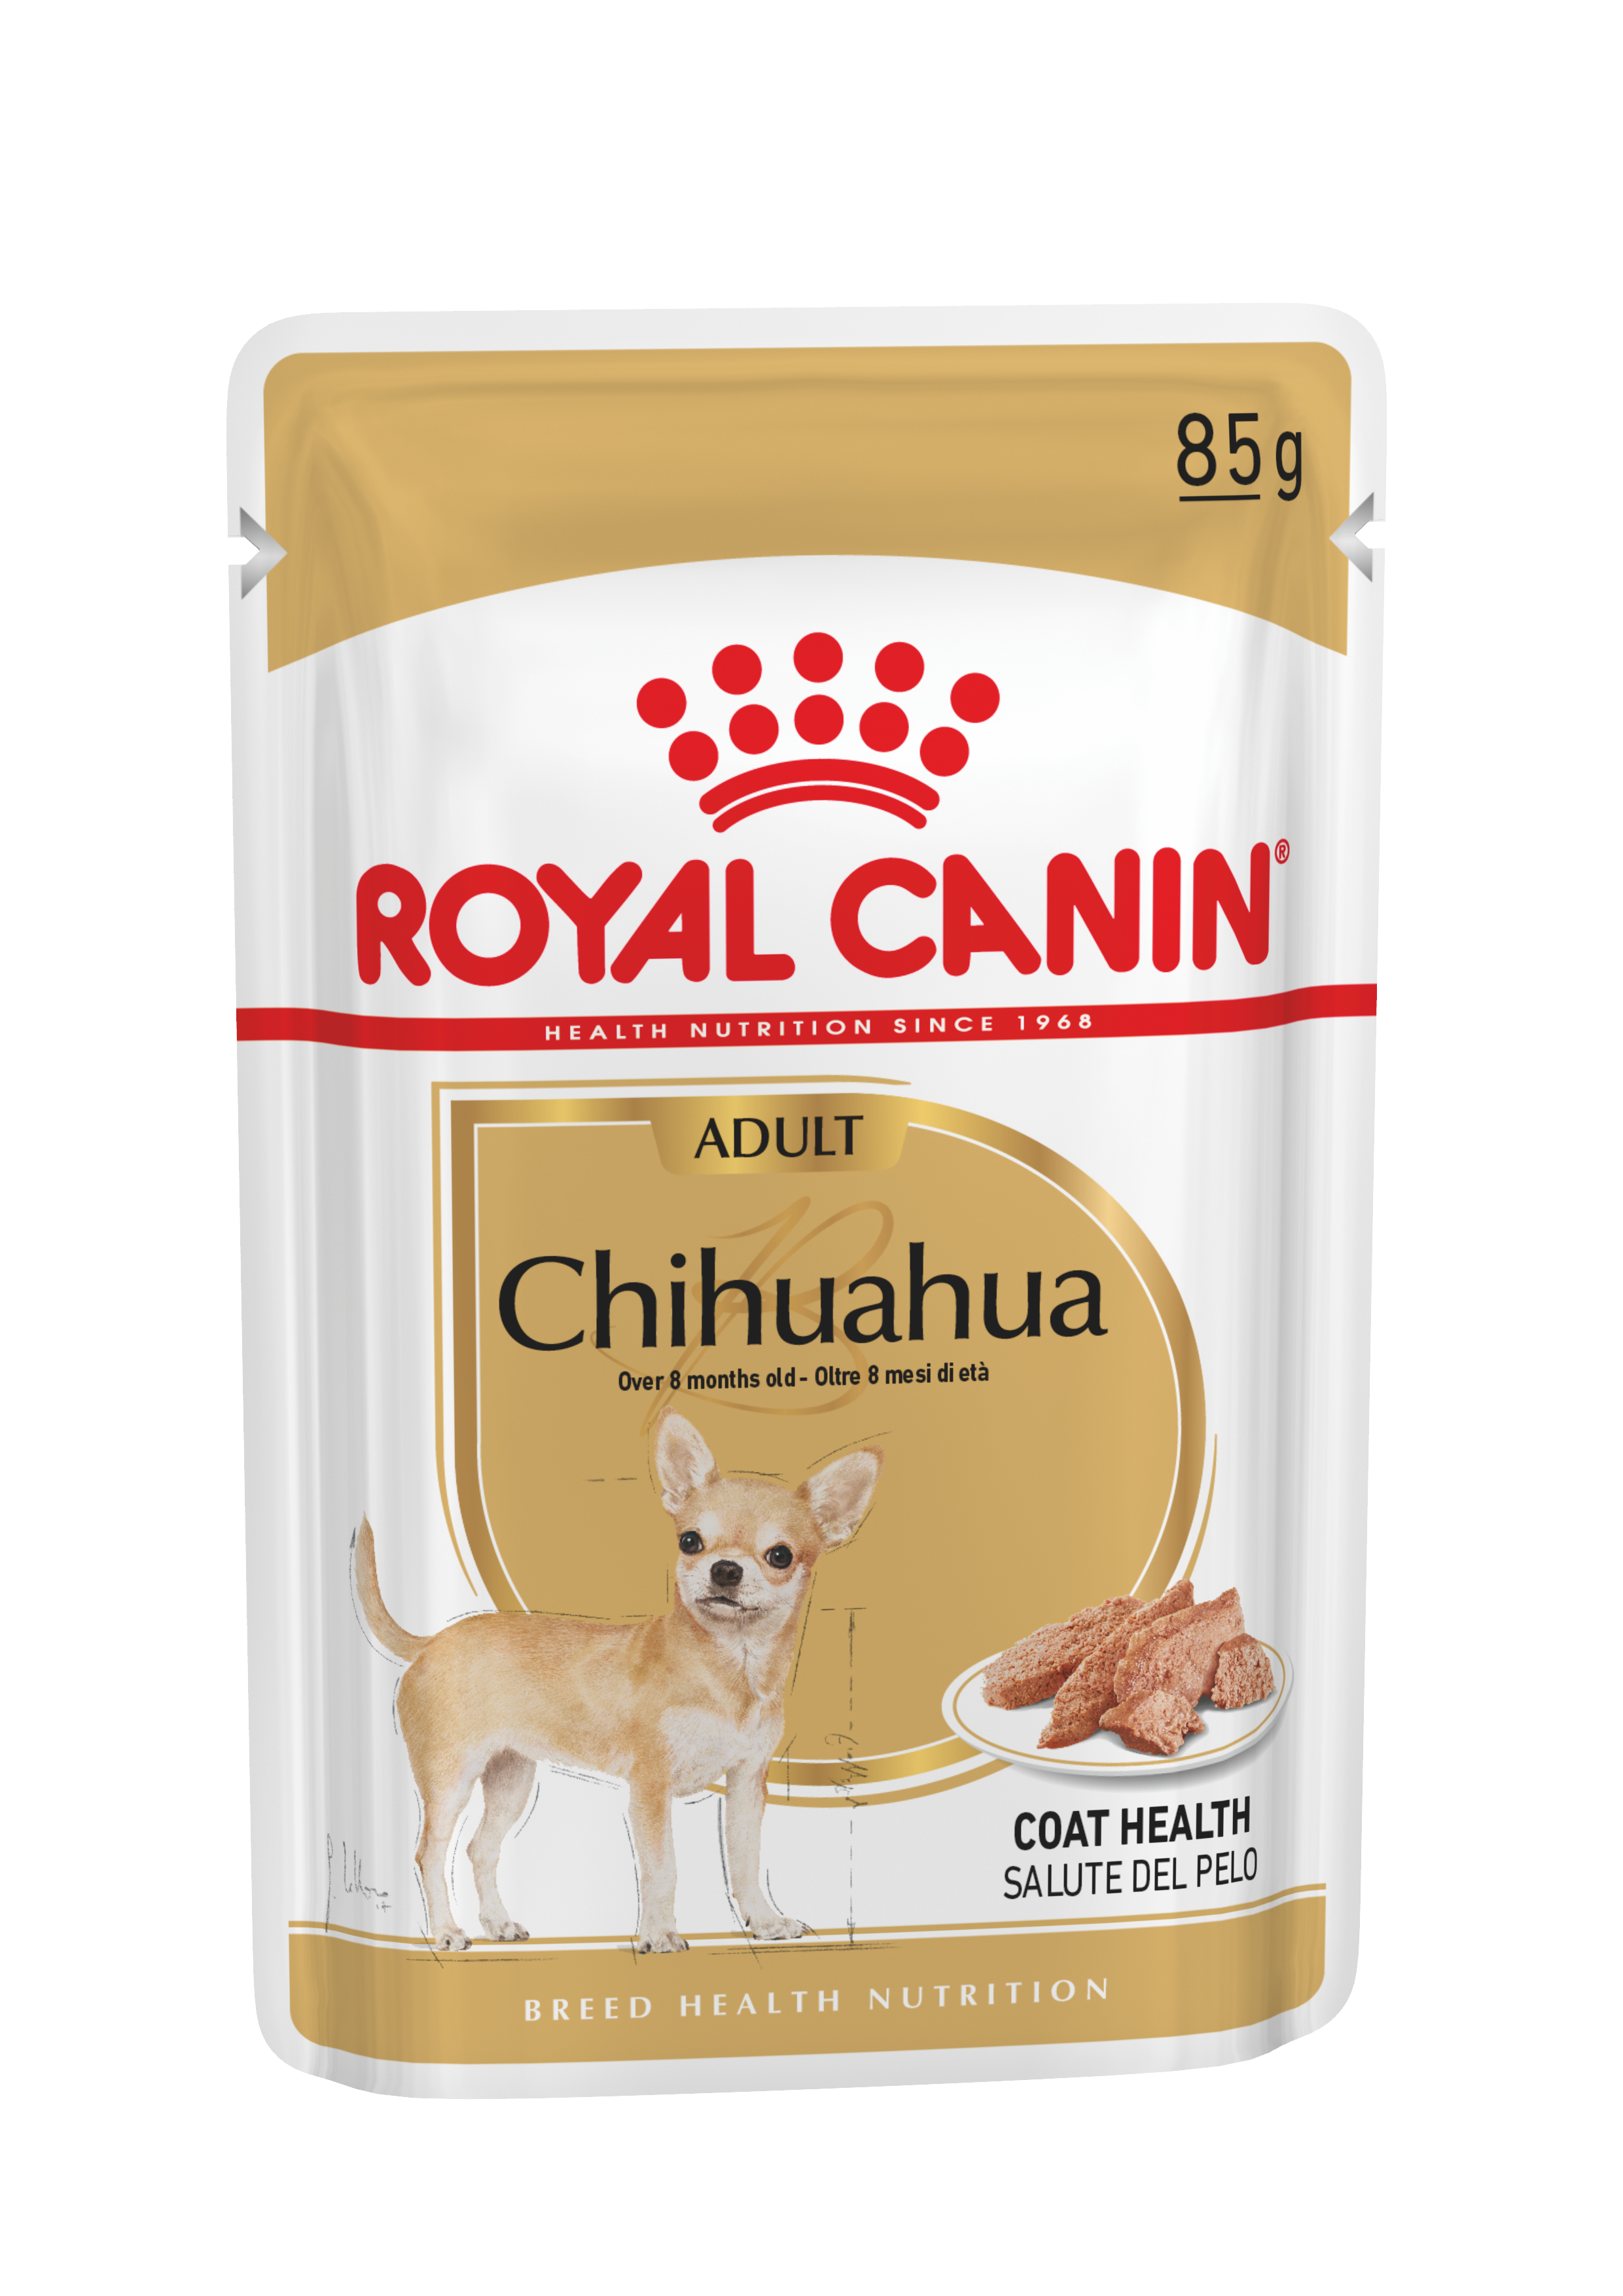 Royal Canin Chihuahua Adult Wet Food Pouch 85g